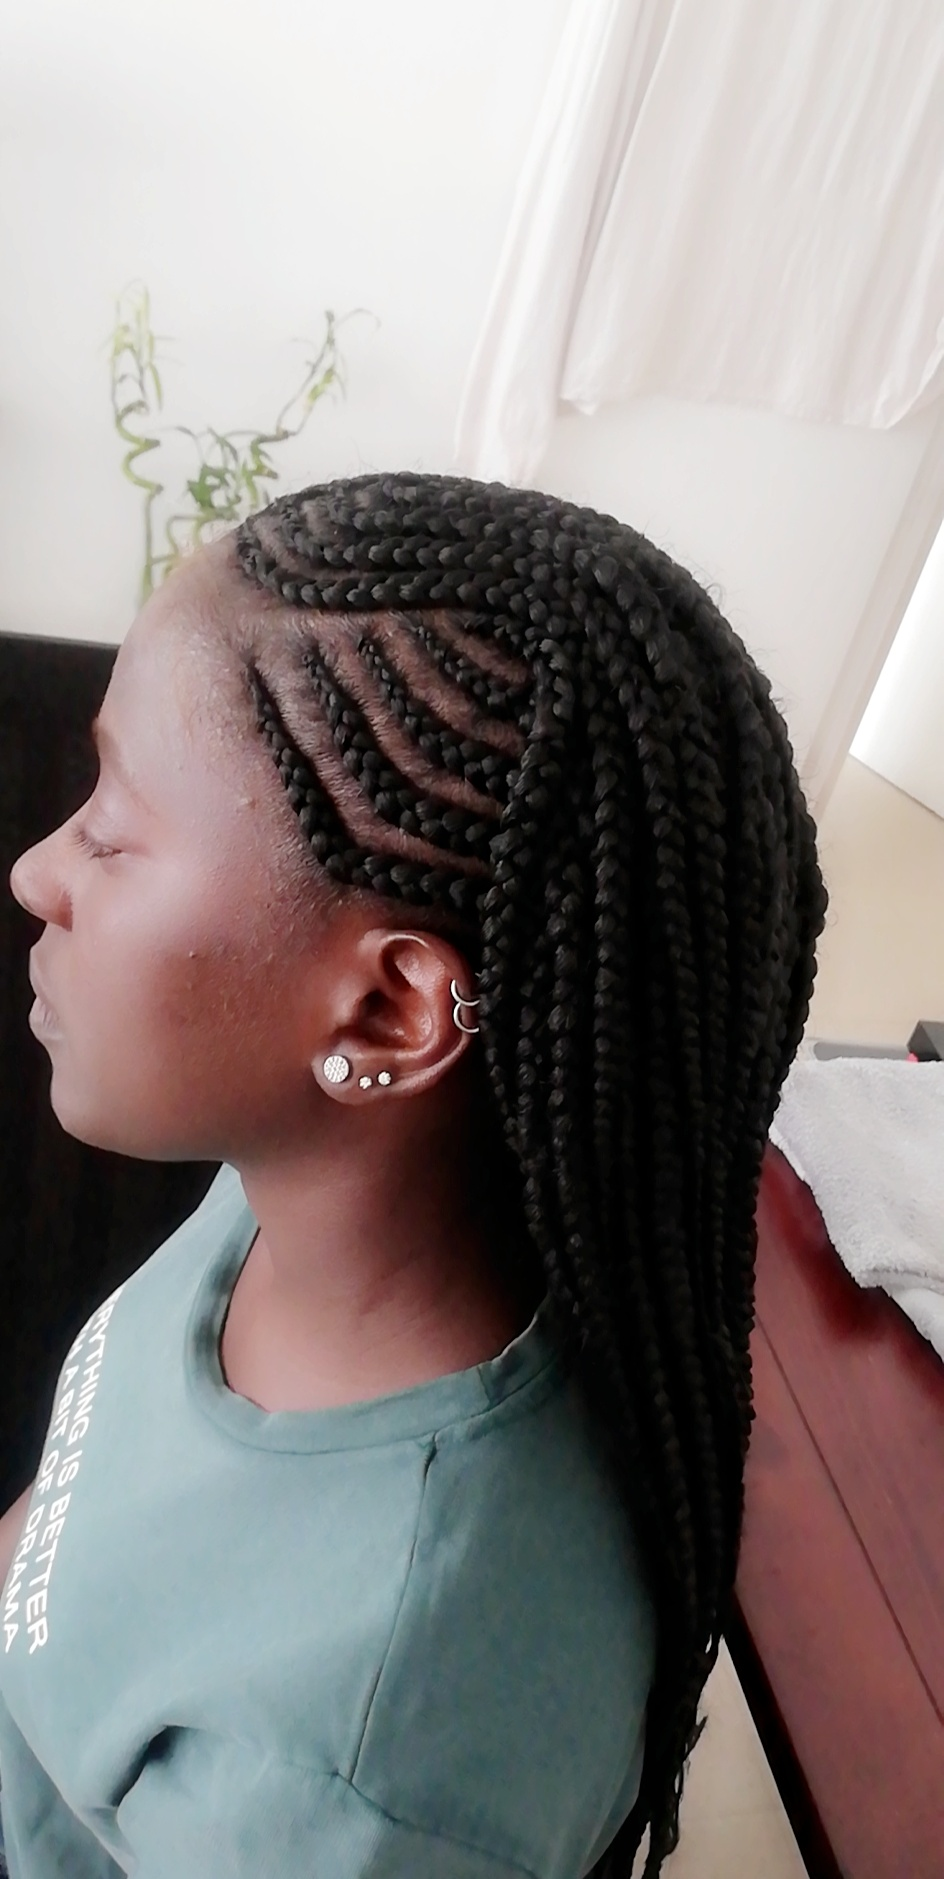 salon de coiffure afro tresse tresses box braids crochet braids vanilles tissages paris 75 77 78 91 92 93 94 95 WPDSKLAV